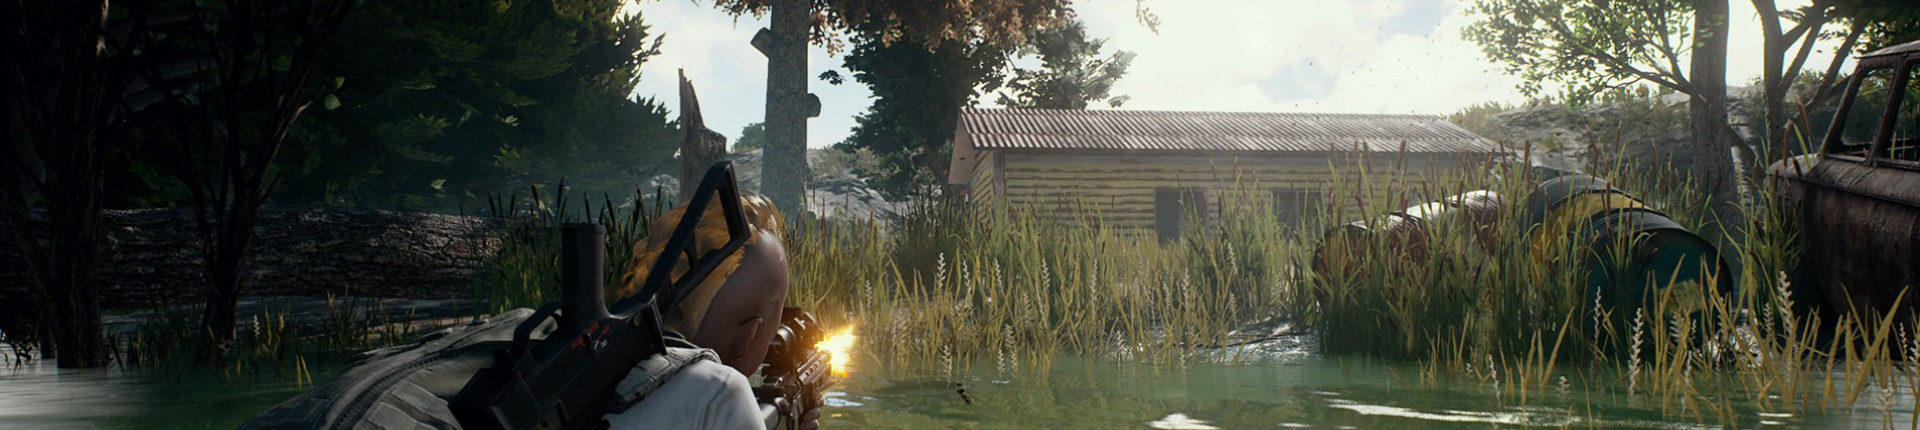 PLAYERUNKNOWN'S BATTLEGROUNDS (Test Server) Patch Notes (8/1/17)